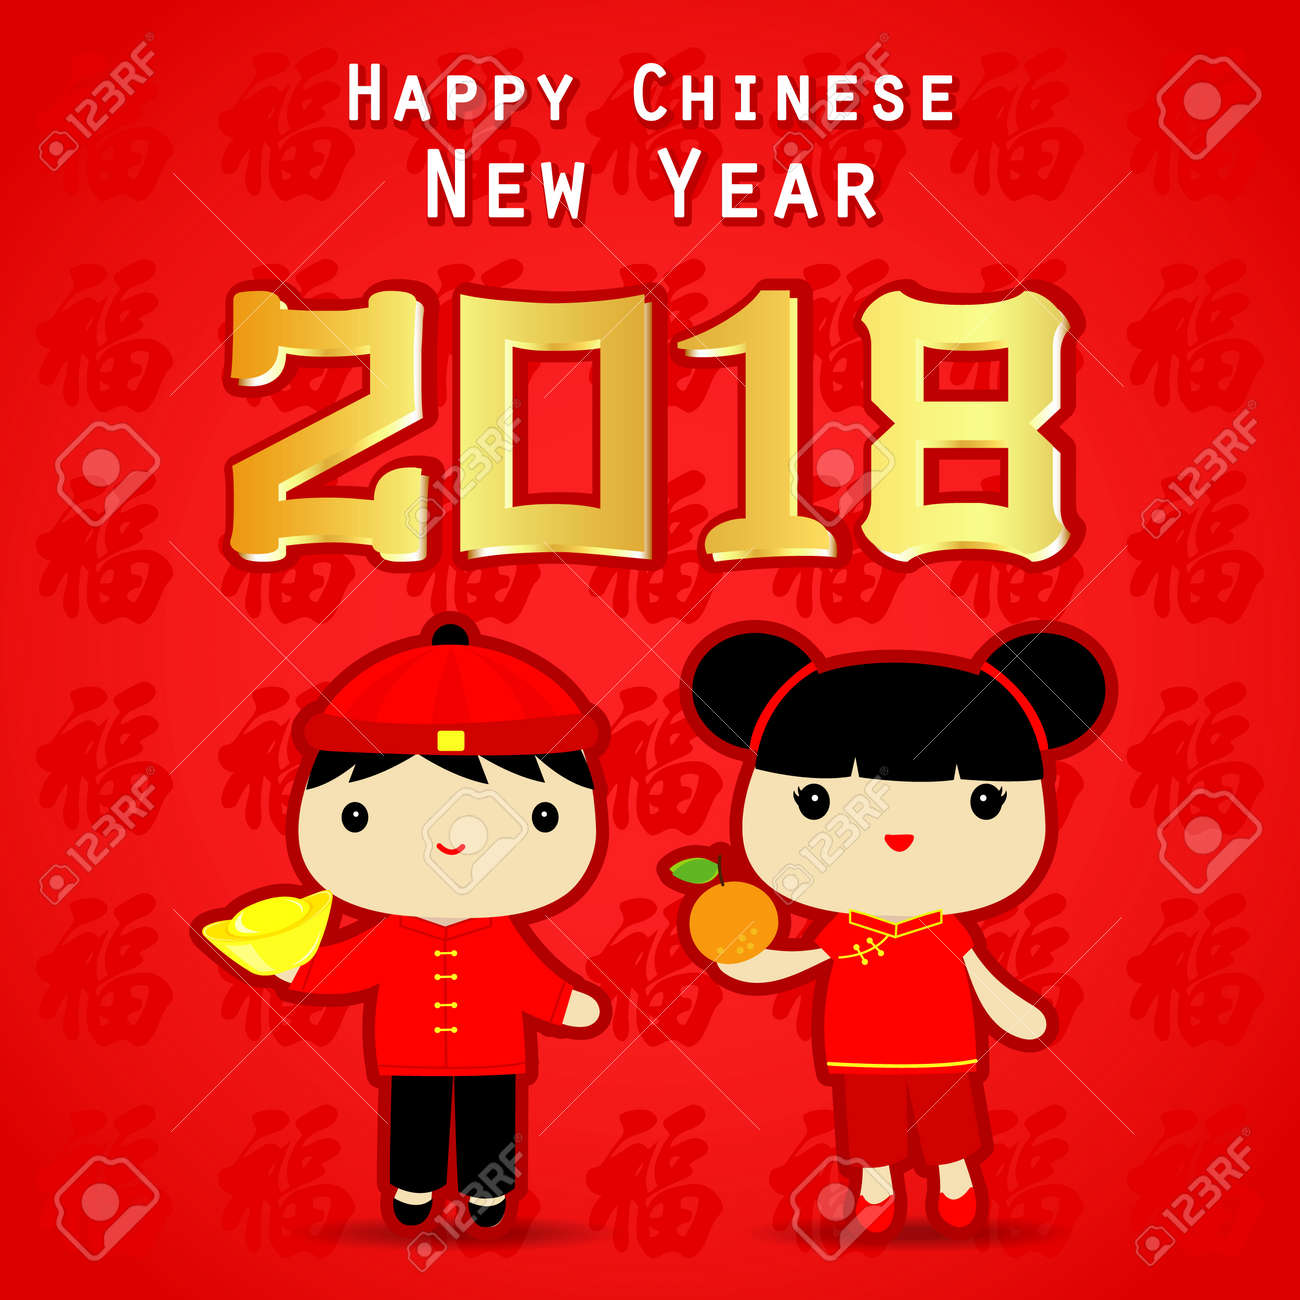 Happy chinese new year 2018 greeting card children cute kids happy chinese new year 2018 greeting card children cute kids cartoon vector stock vector 90225981 kristyandbryce Images